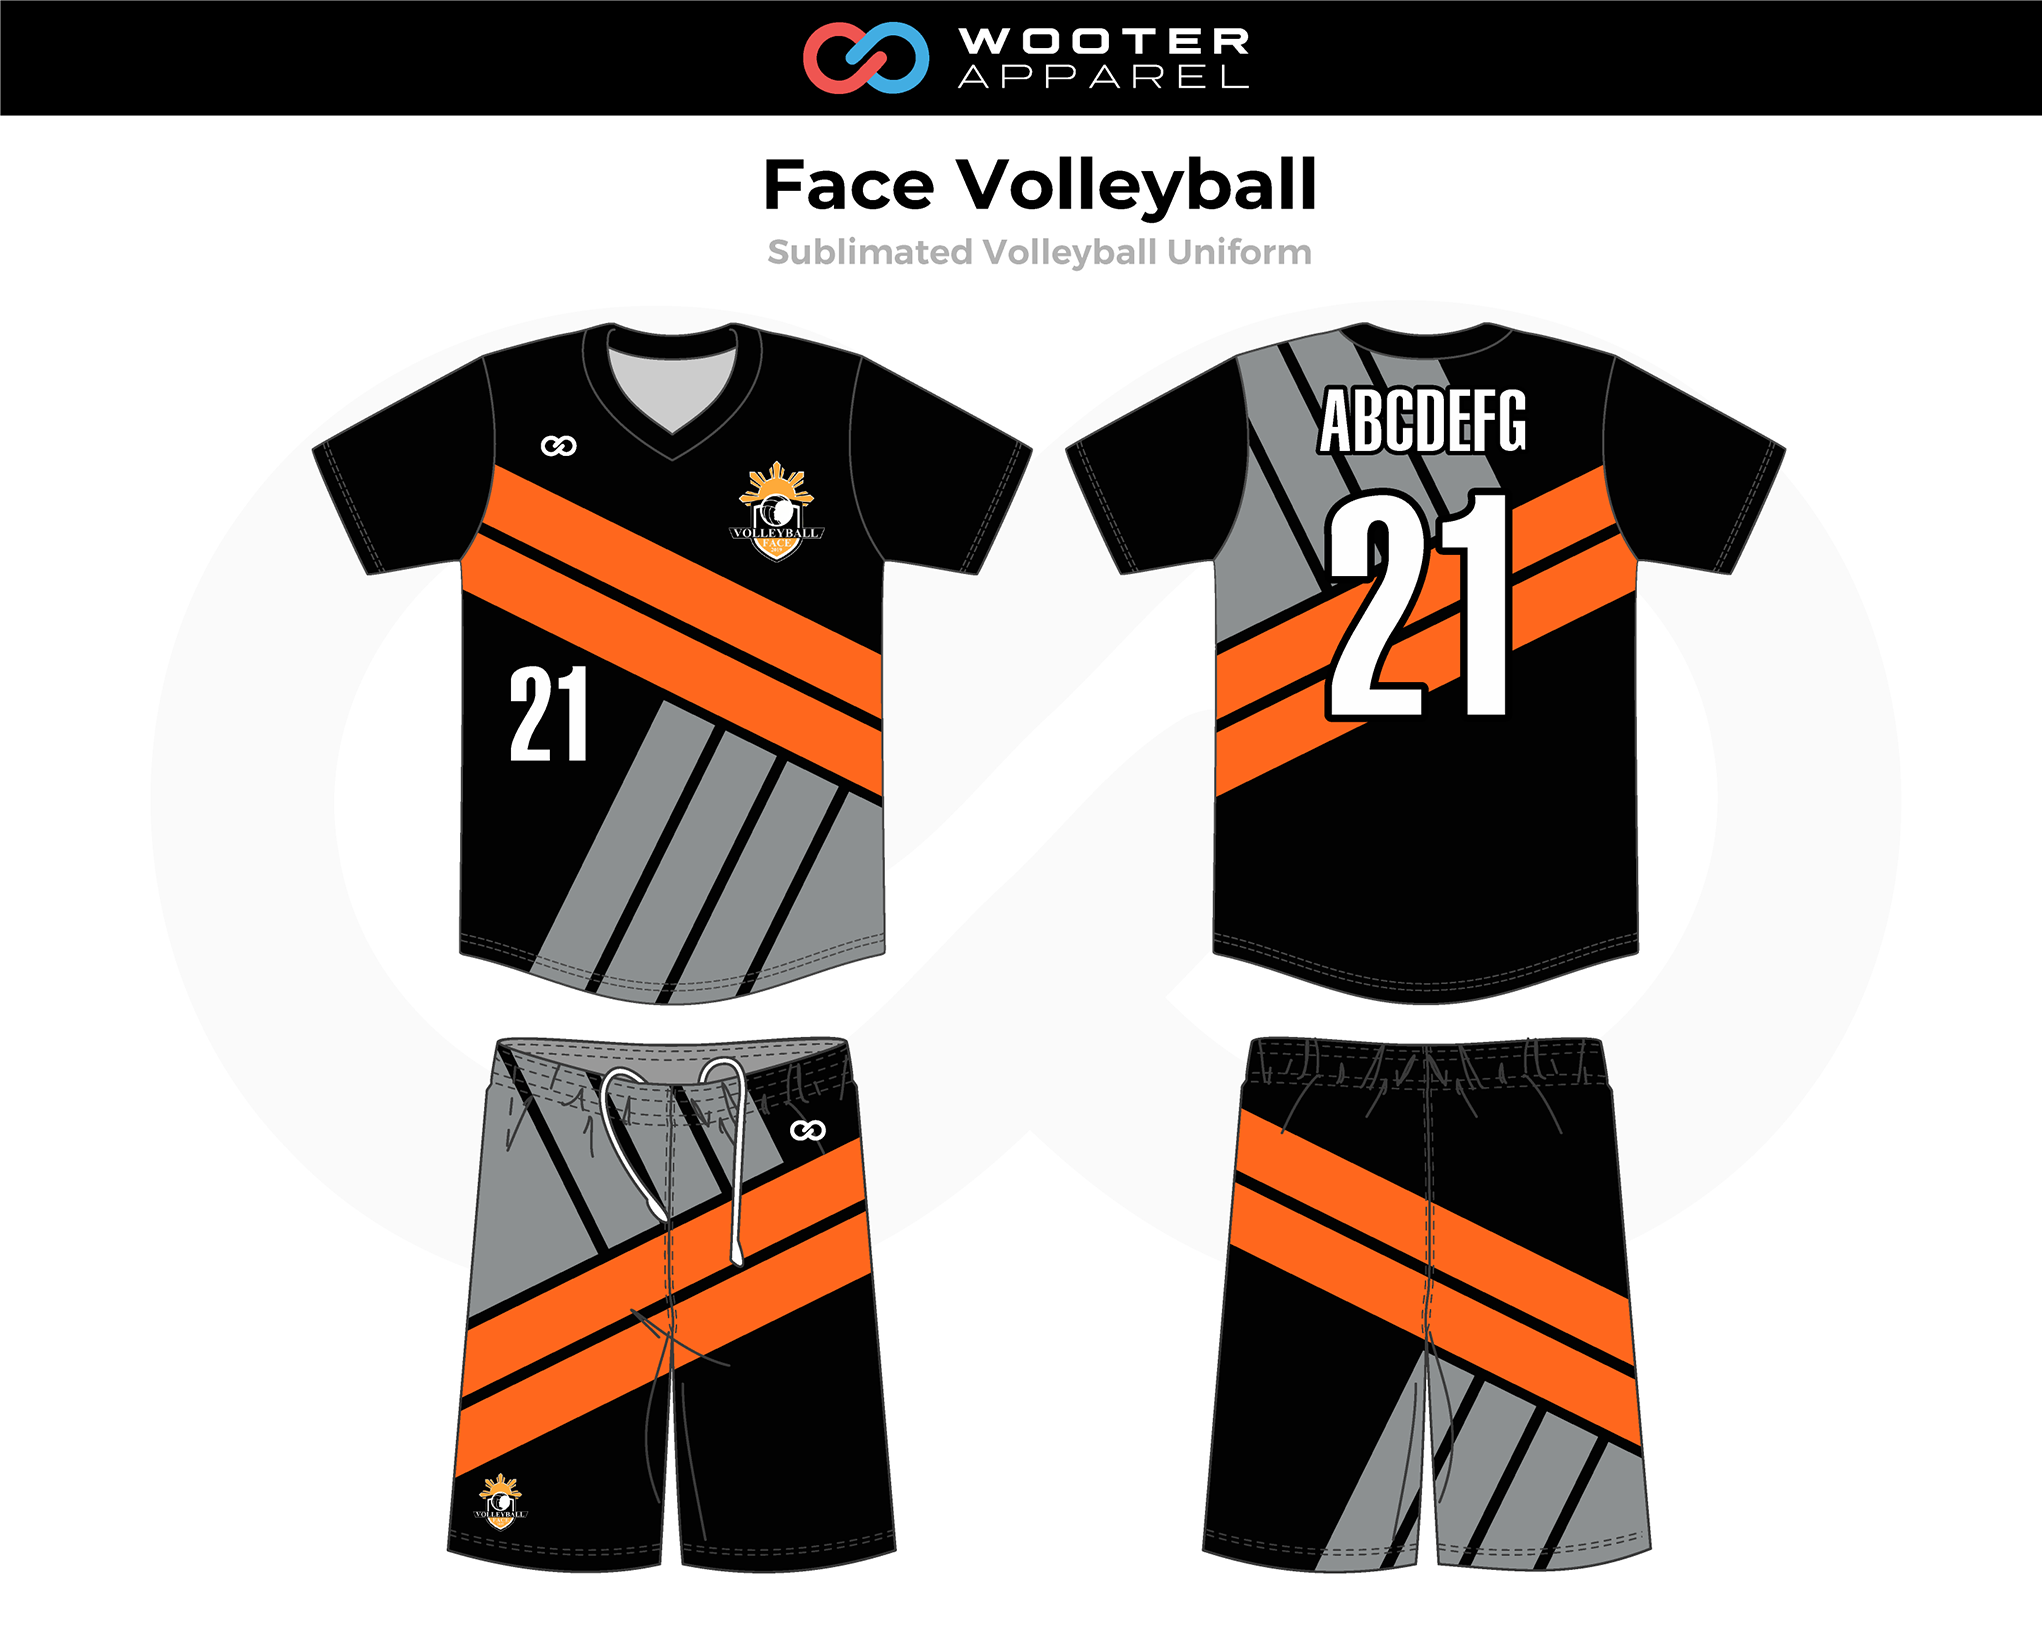 FACE Black Orange Gray White Volleyball Uniforms, Jerseys, and Shorts